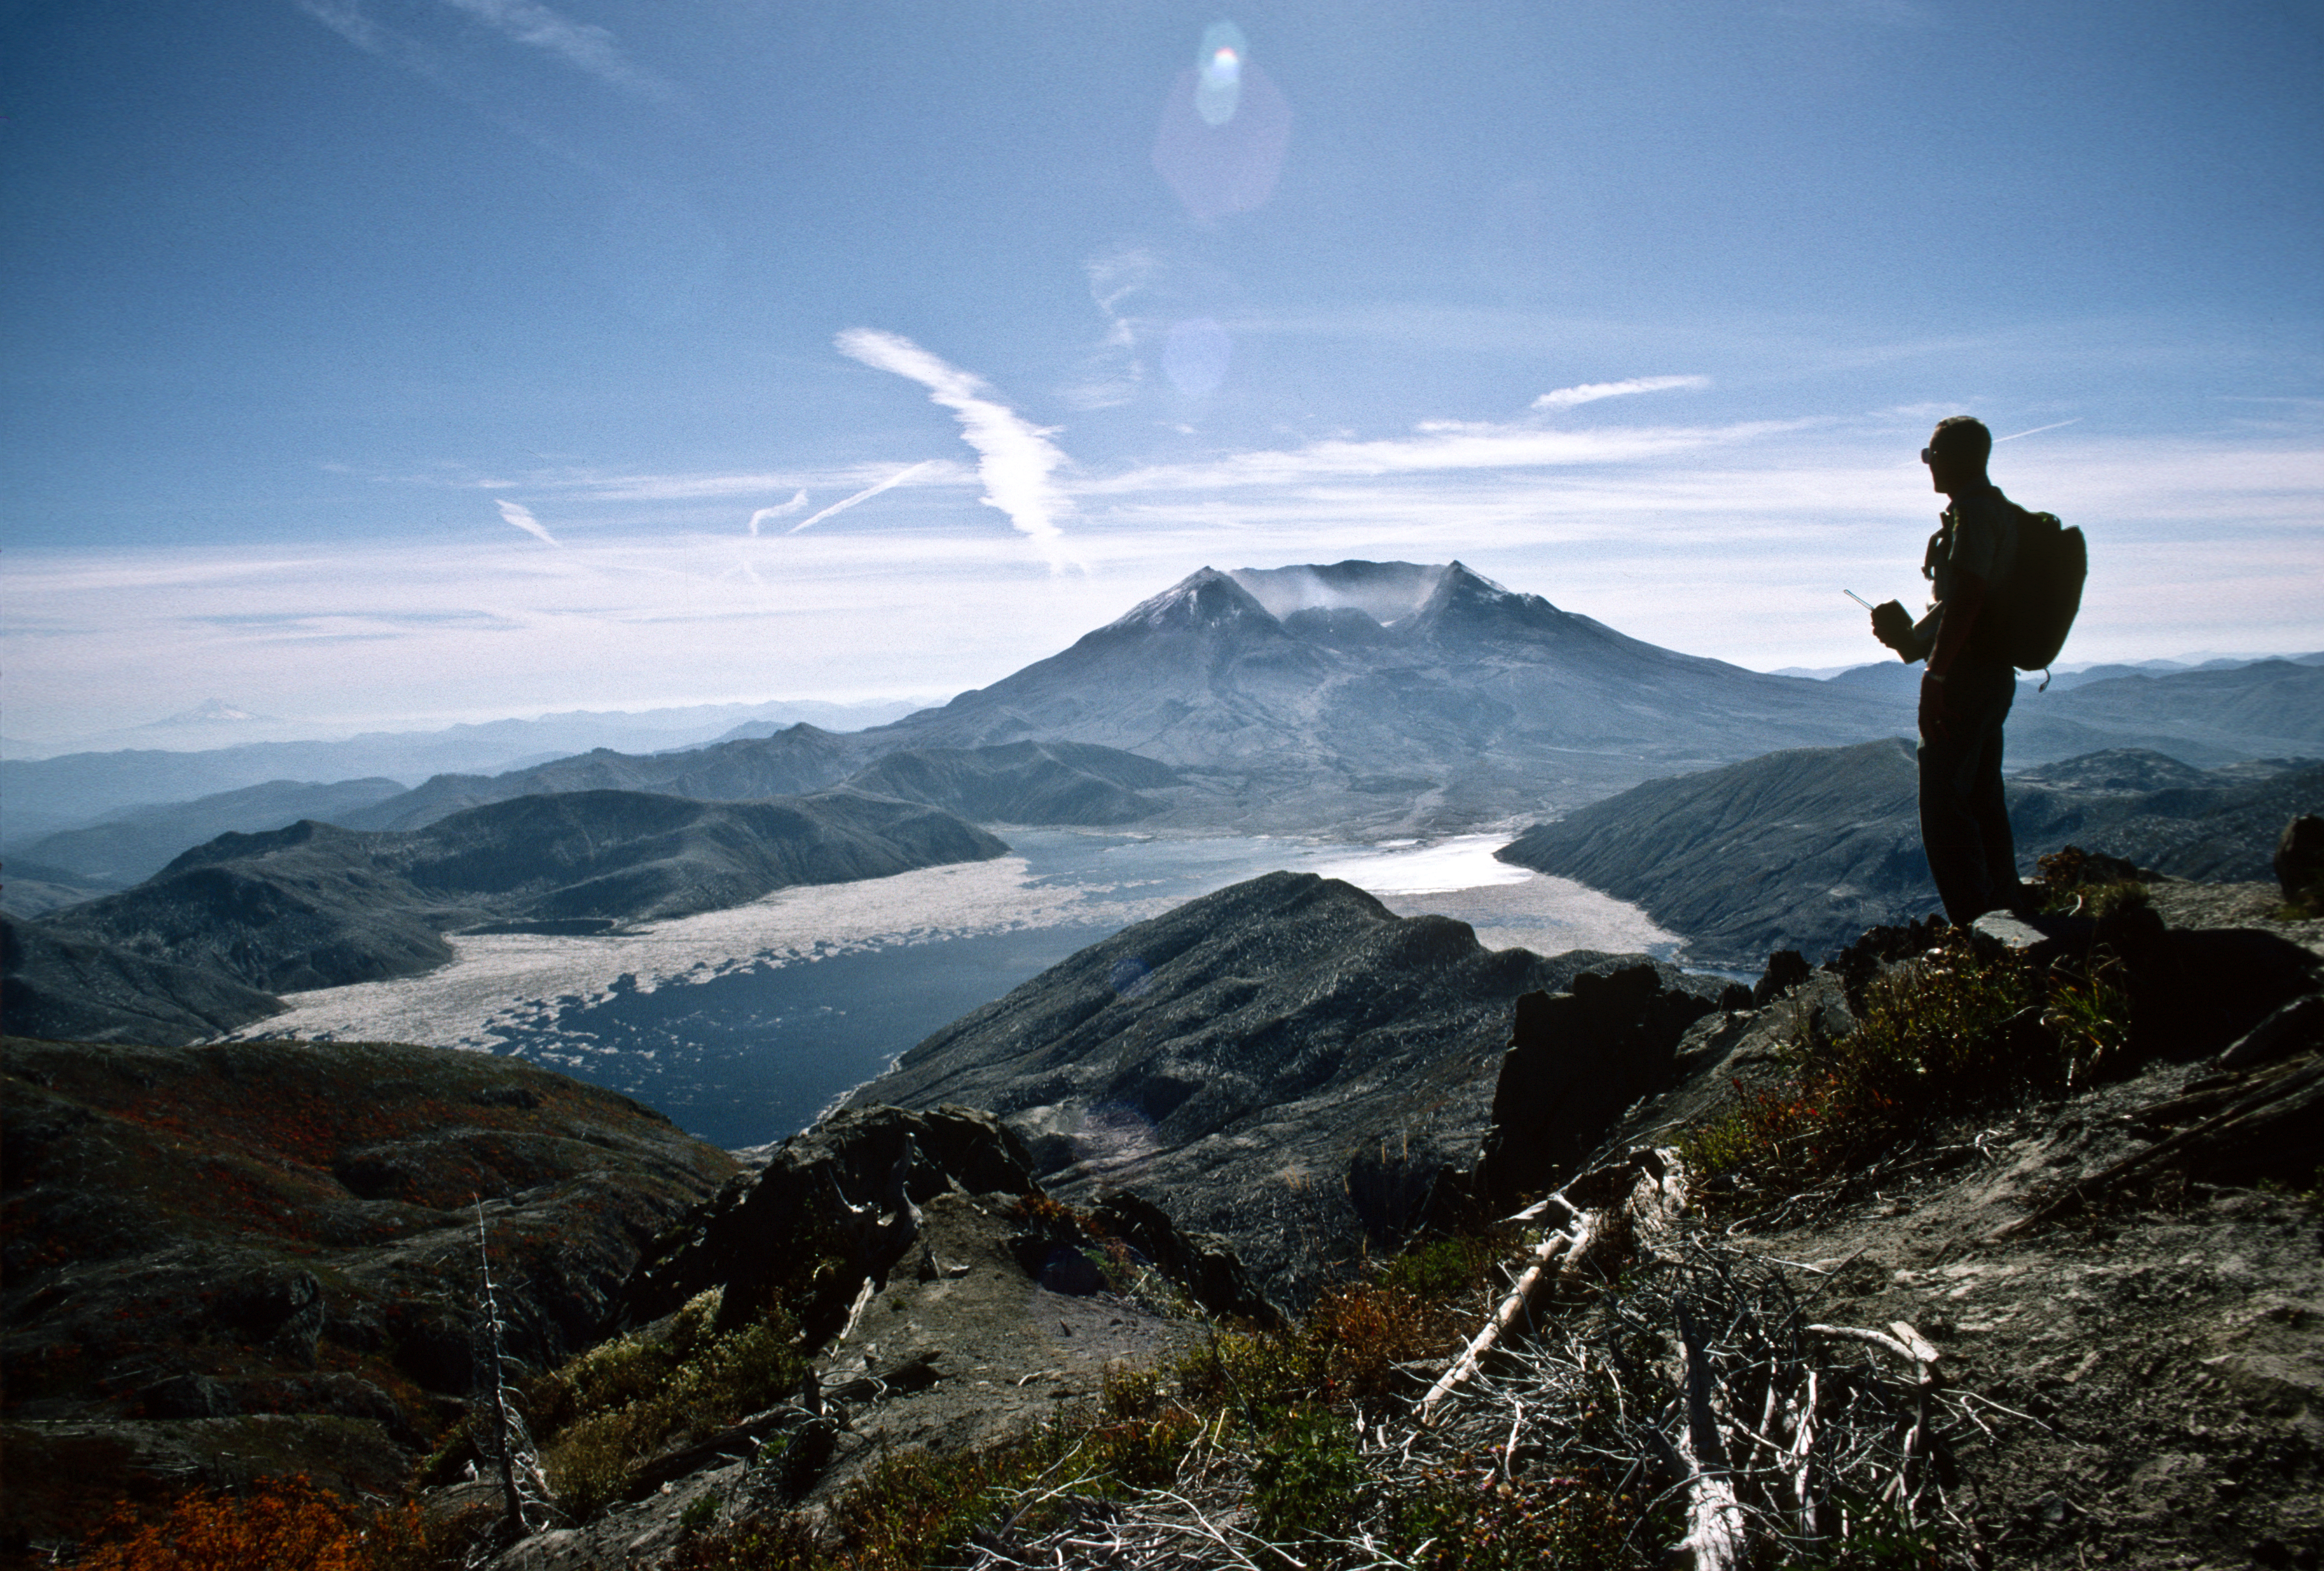 Backcountry Ranger Viewing Spirit Lake and Mt St Helens, Gifford Pinchot National Forest